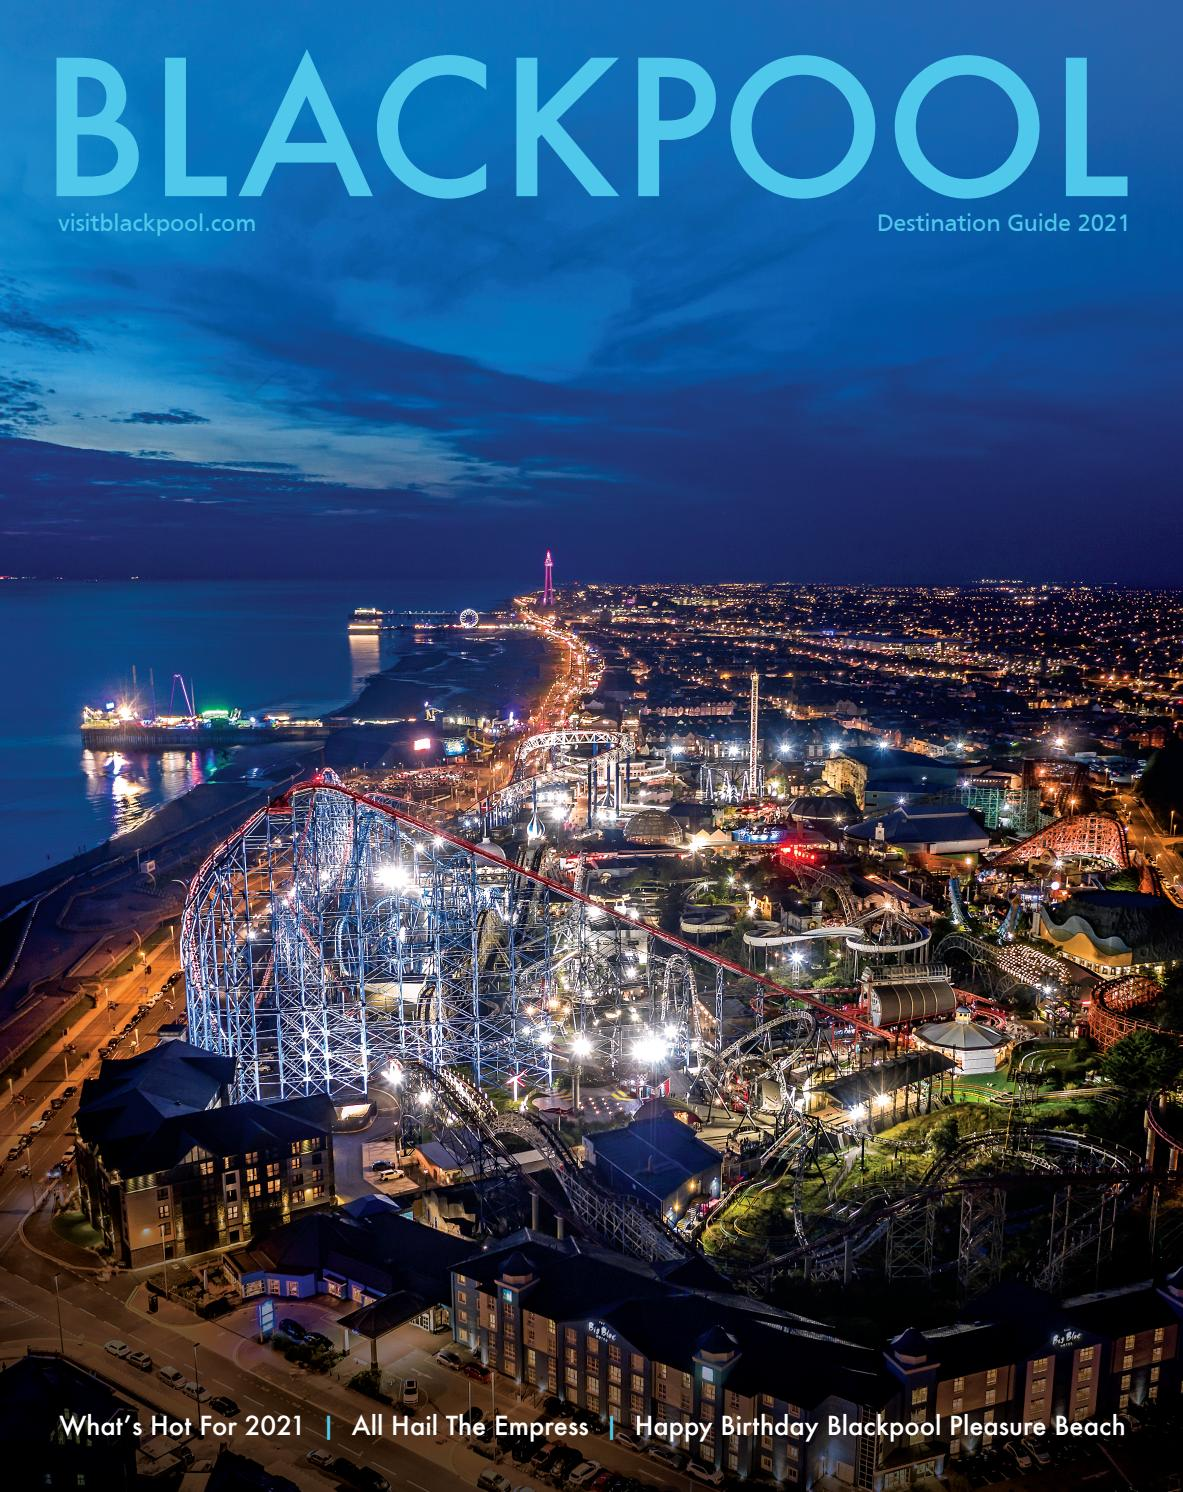 Blackpool Destination Guide 2021 By Visitblackpool Issuu